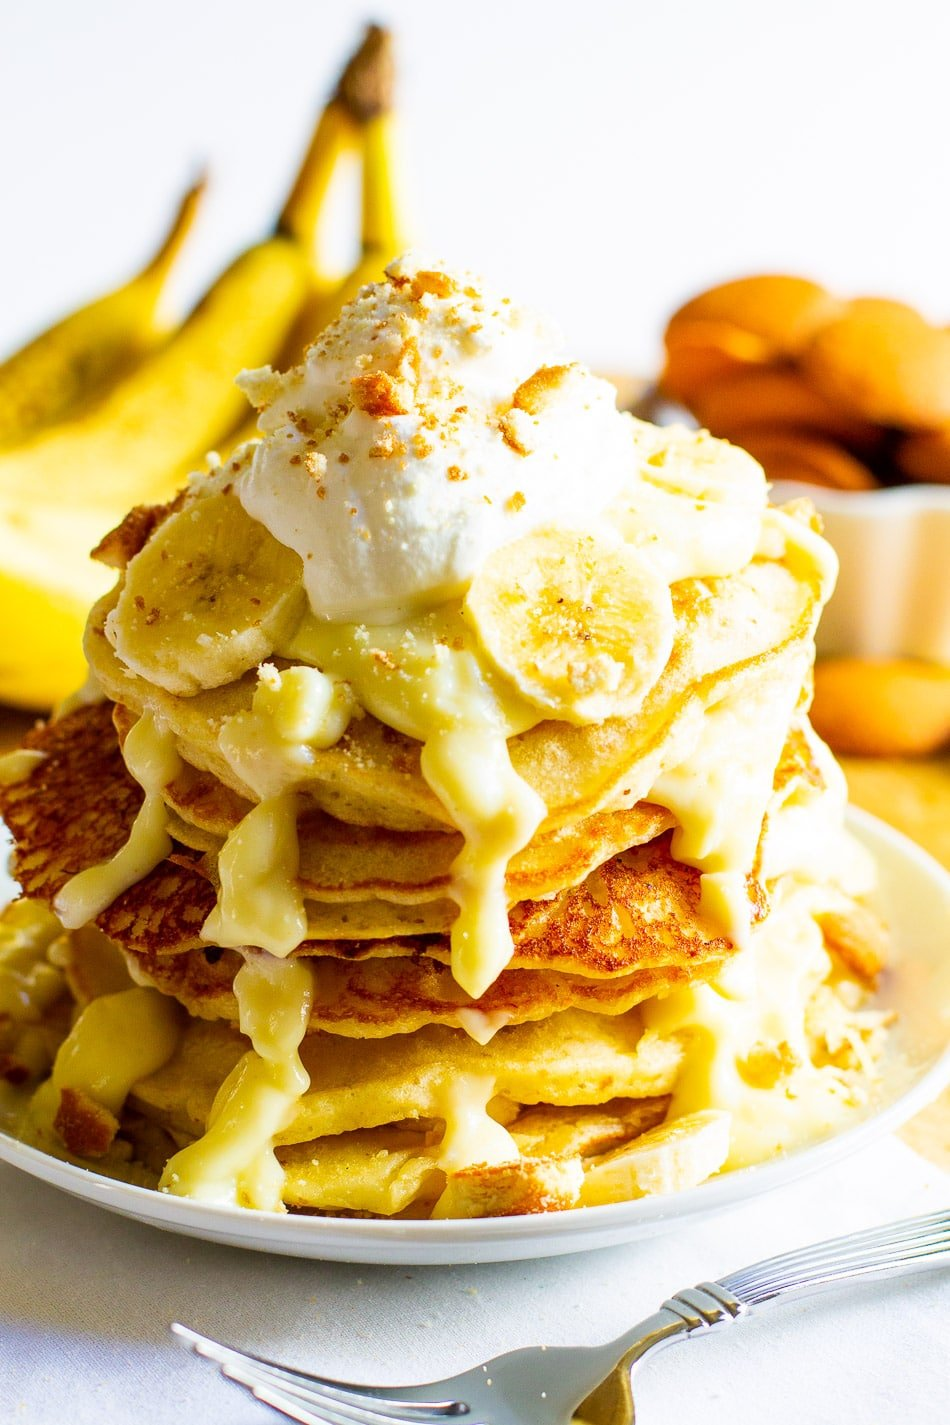 Stack of pancakes topped with whipped cream.